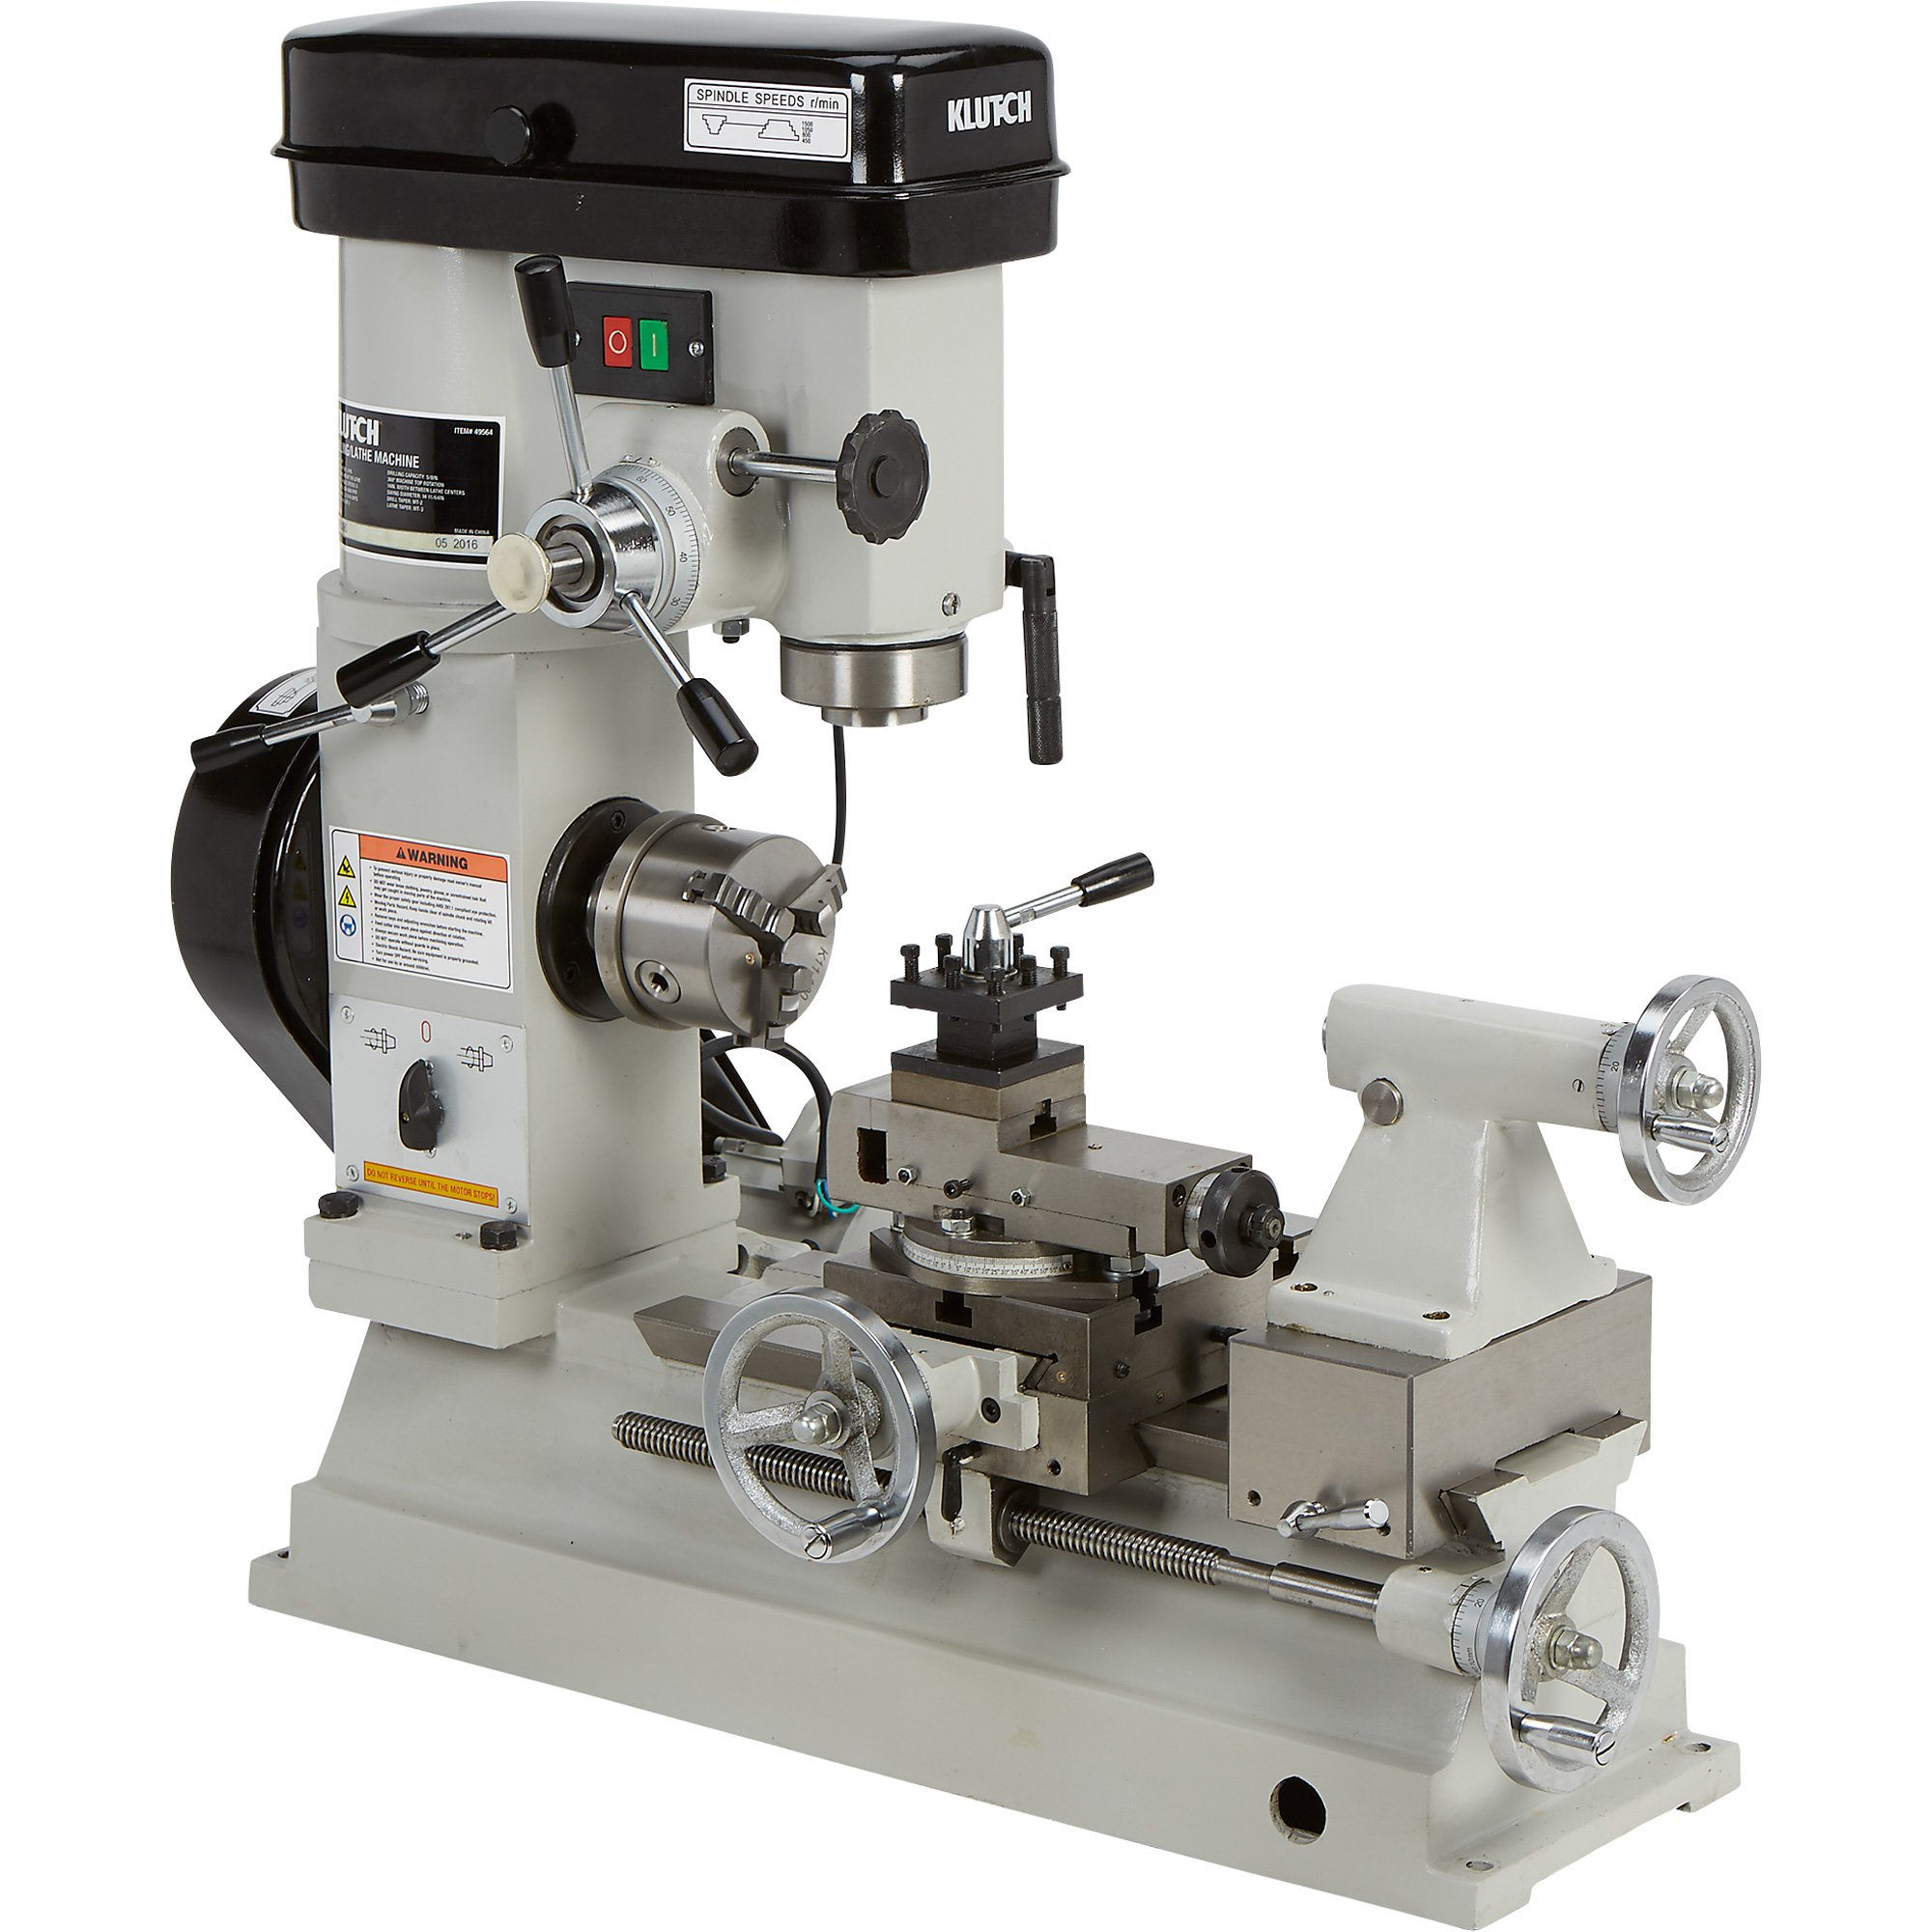 Klutch Metal Lathe Milling And Drilling Machine 1 2 Hp 110v Motor